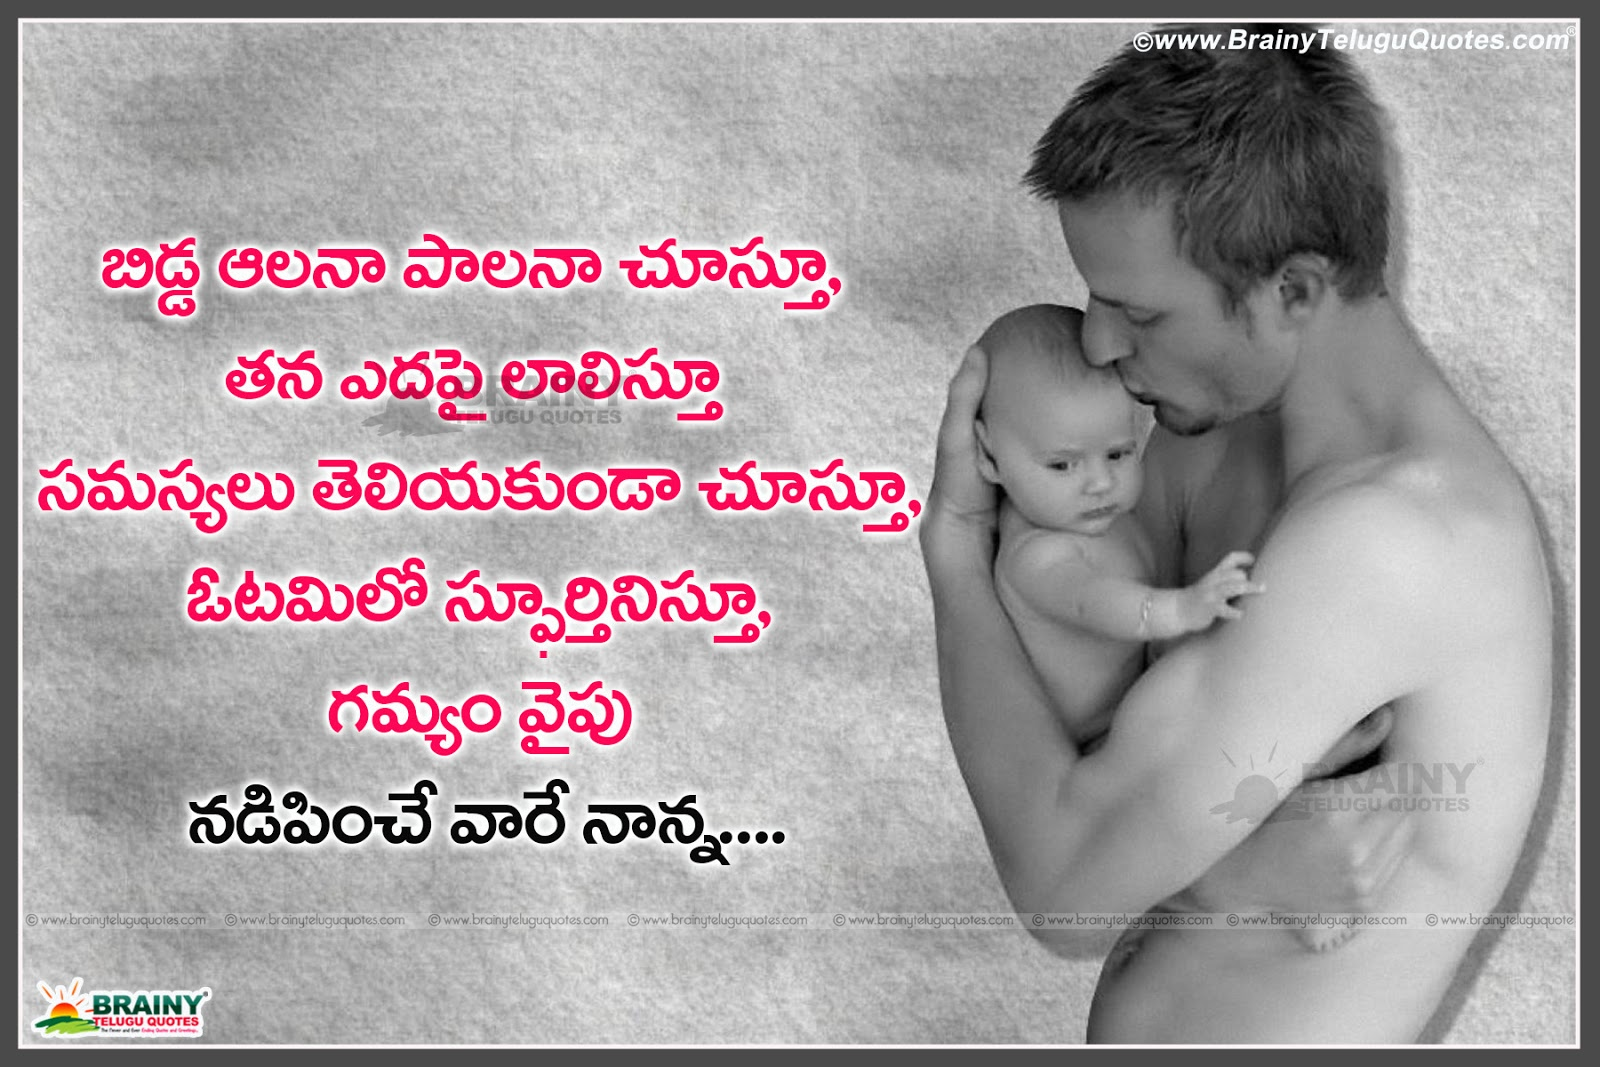 Father Son Love Quotes Telugu All Top Father Quotes Wishes Greetings  Brainyteluguquotes